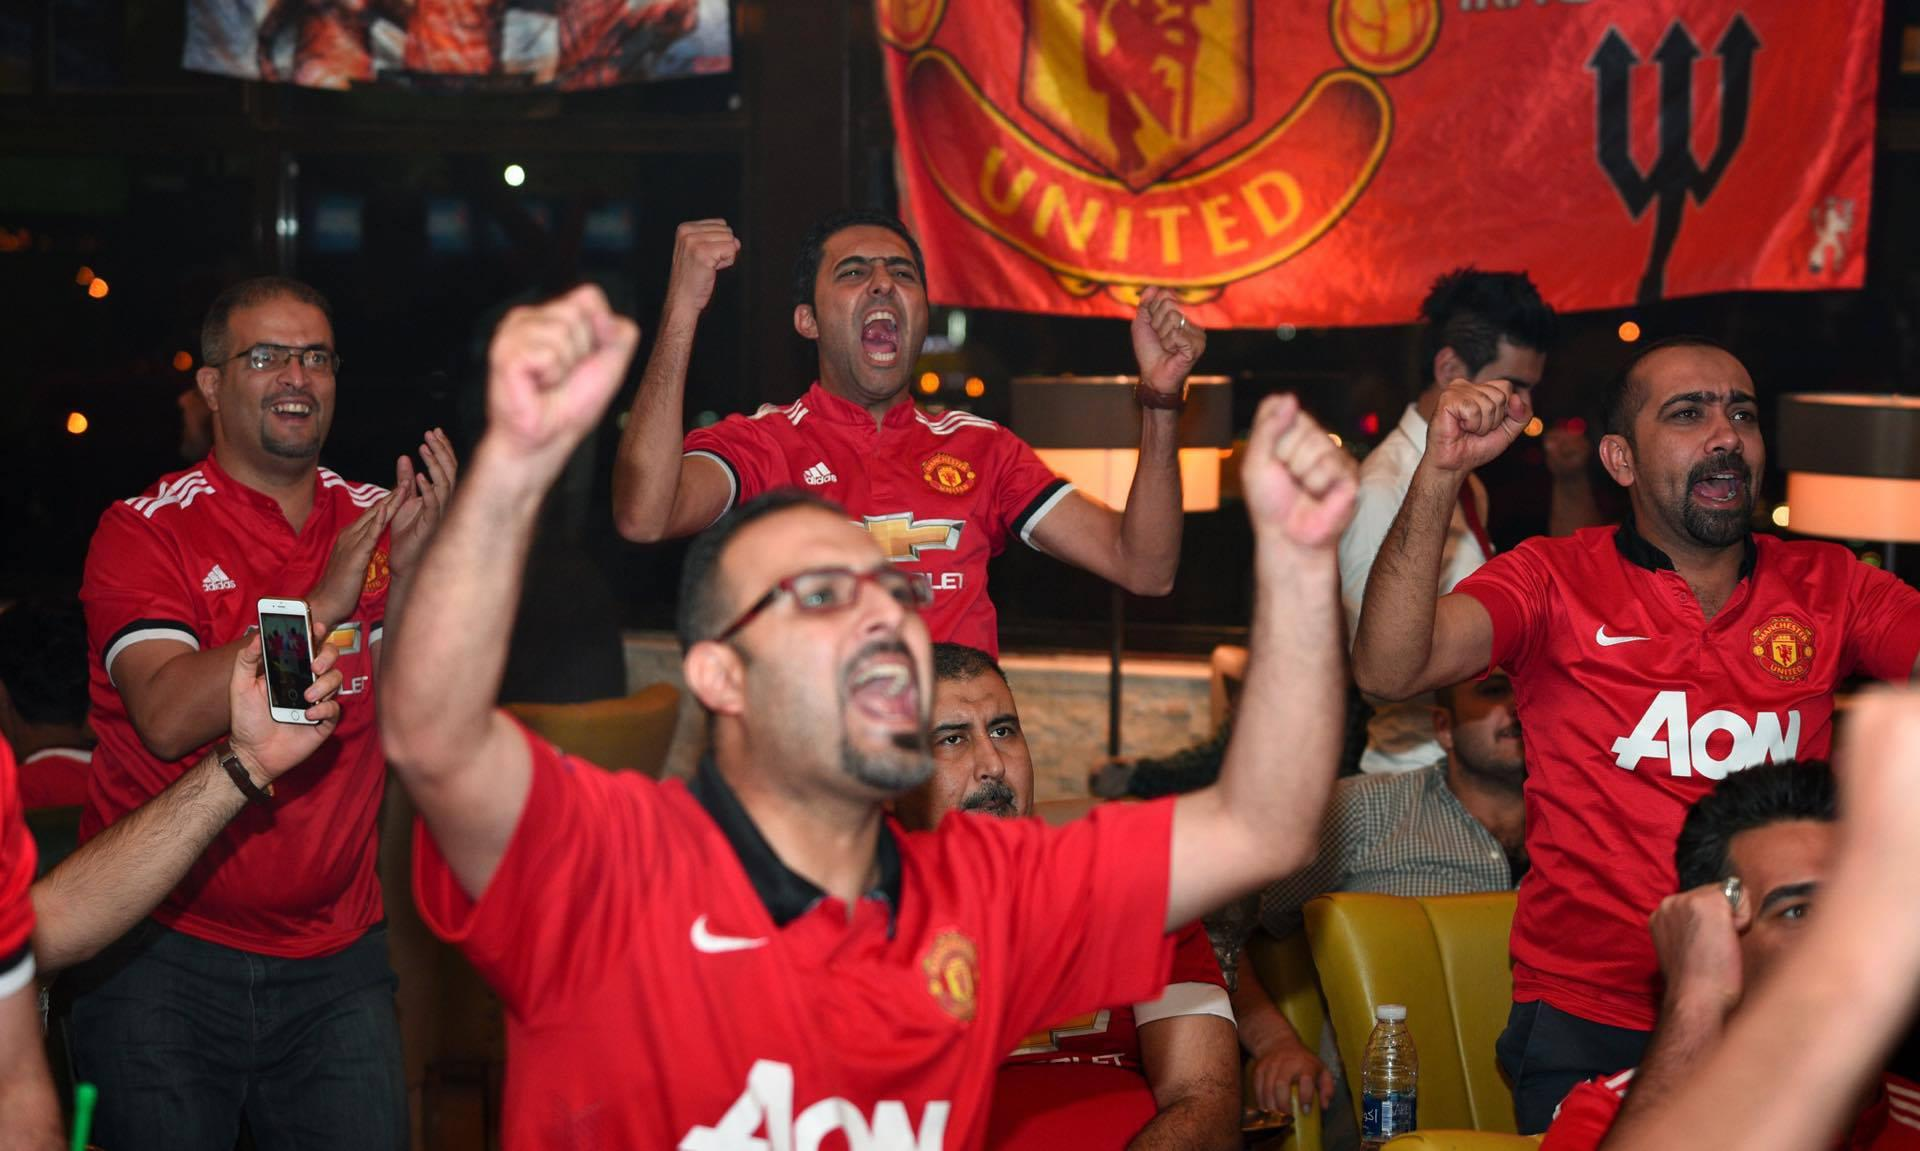 Members of United's supporters' club in Iraq celebrate a goal